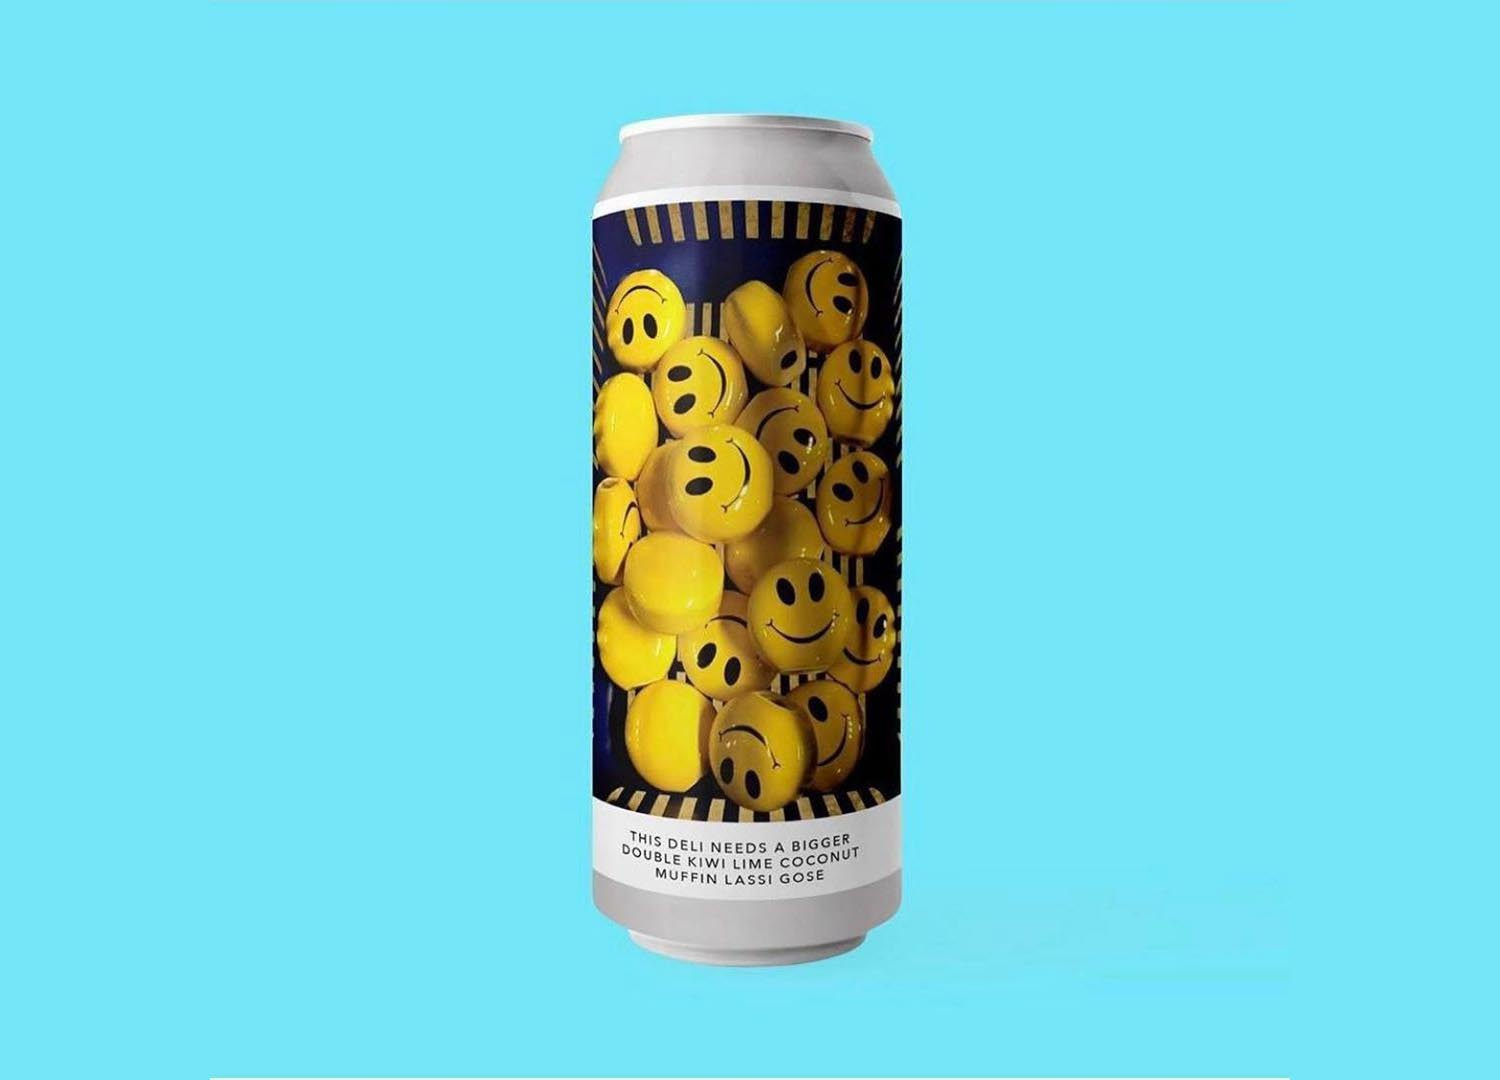 Evil Twin NYC x Omnipollo, This Deli Needs a Bigger Double Kiwi Lime Coconut Muffin Lassi Gose